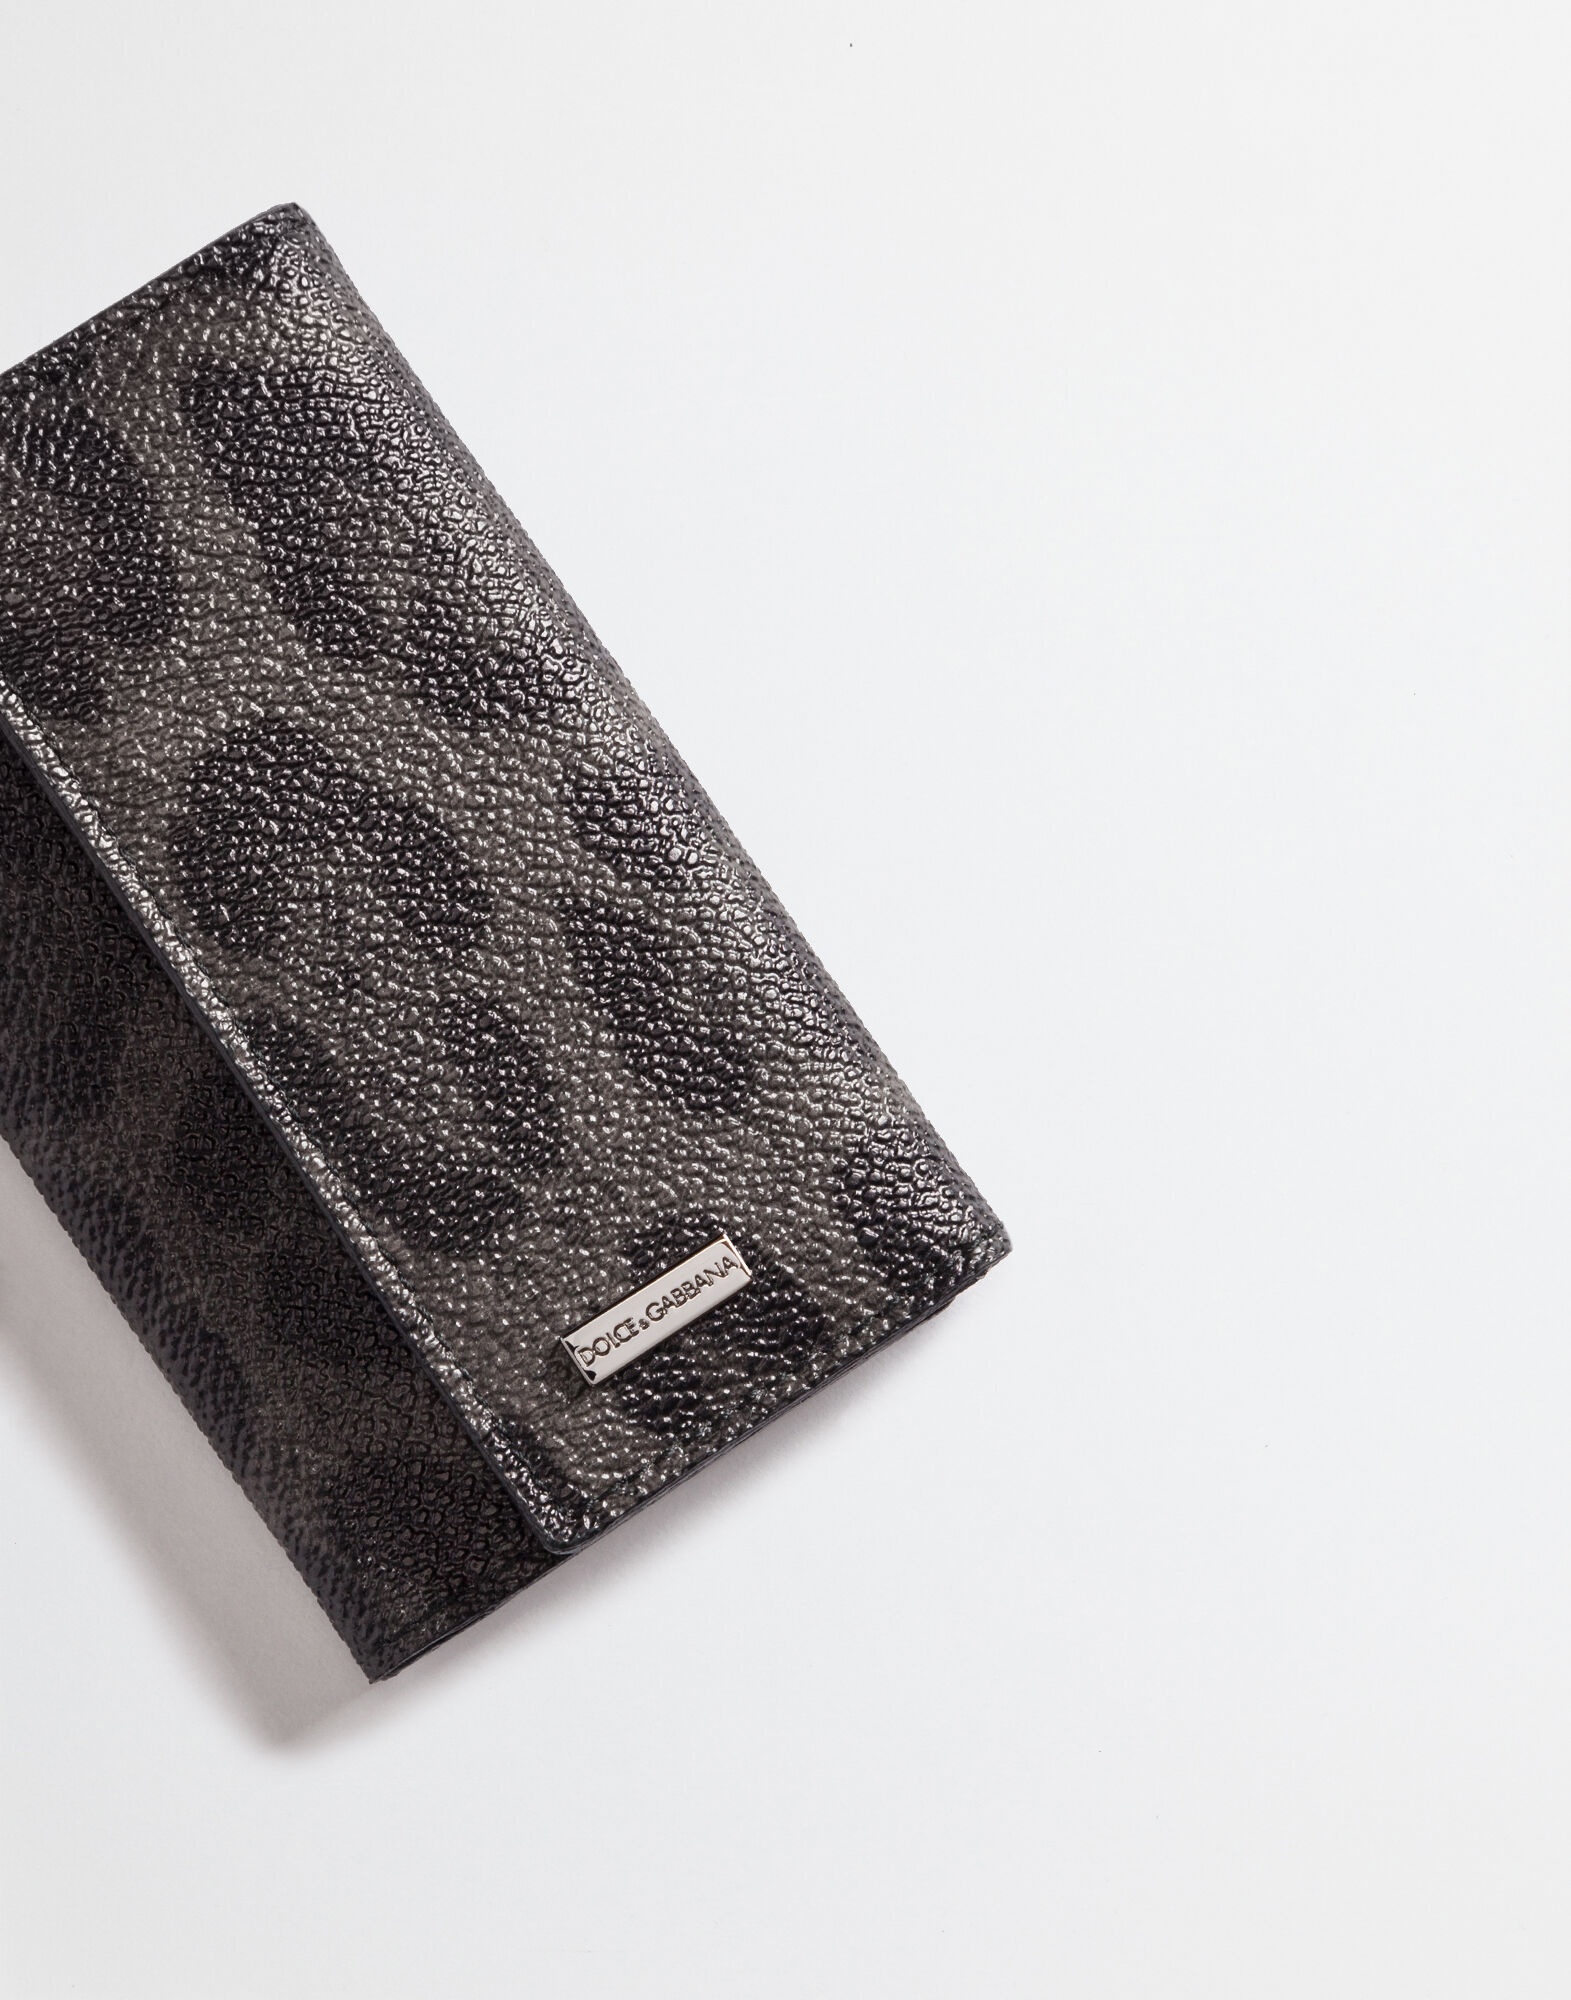 KEY HOLDER IN LEOPARD TEXTURED LEATHER